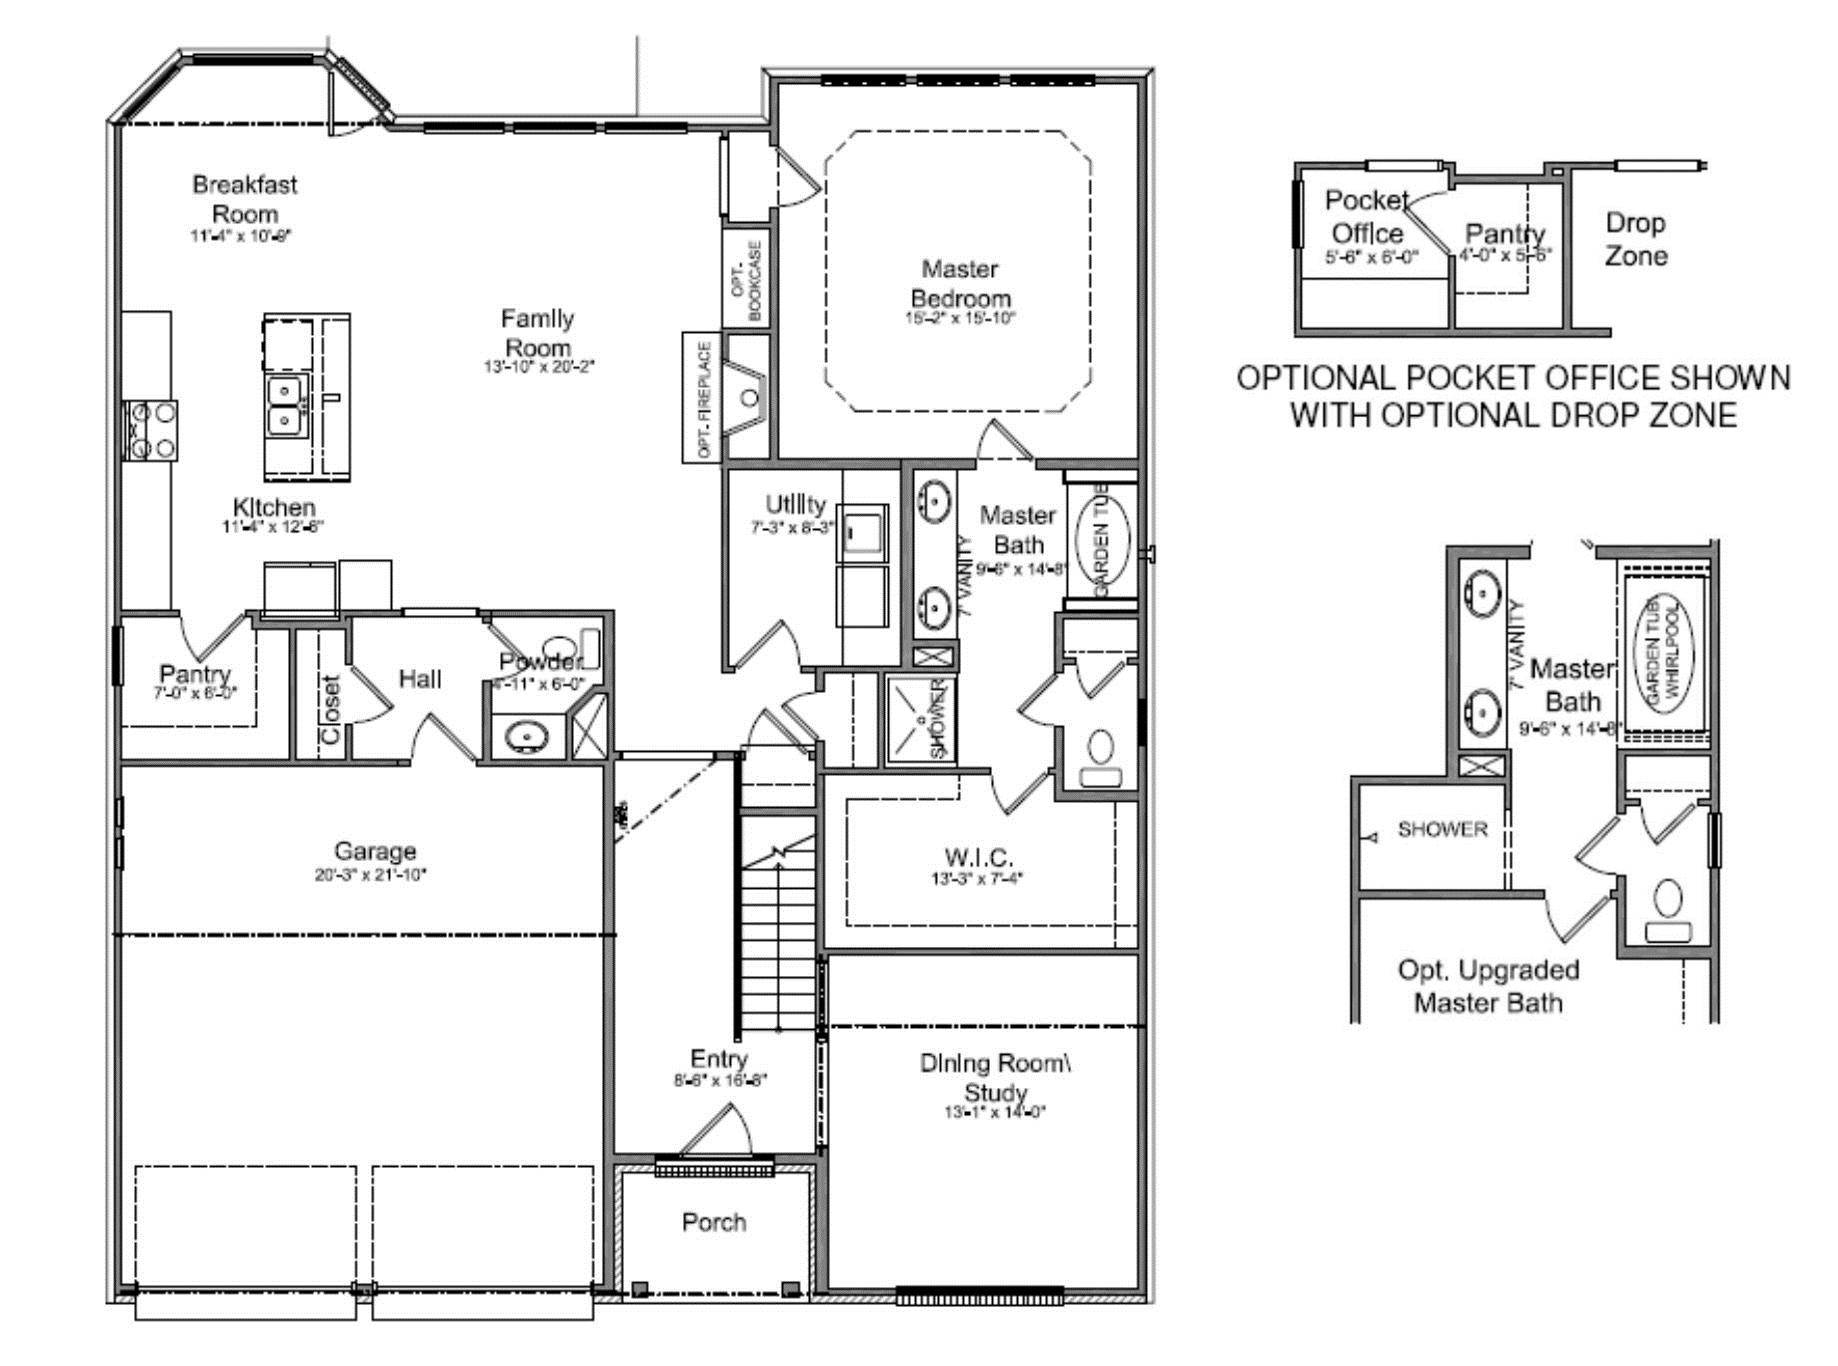 Walk in closet and bathroom floor plans roselawnlutheran - Master bedroom layouts ...